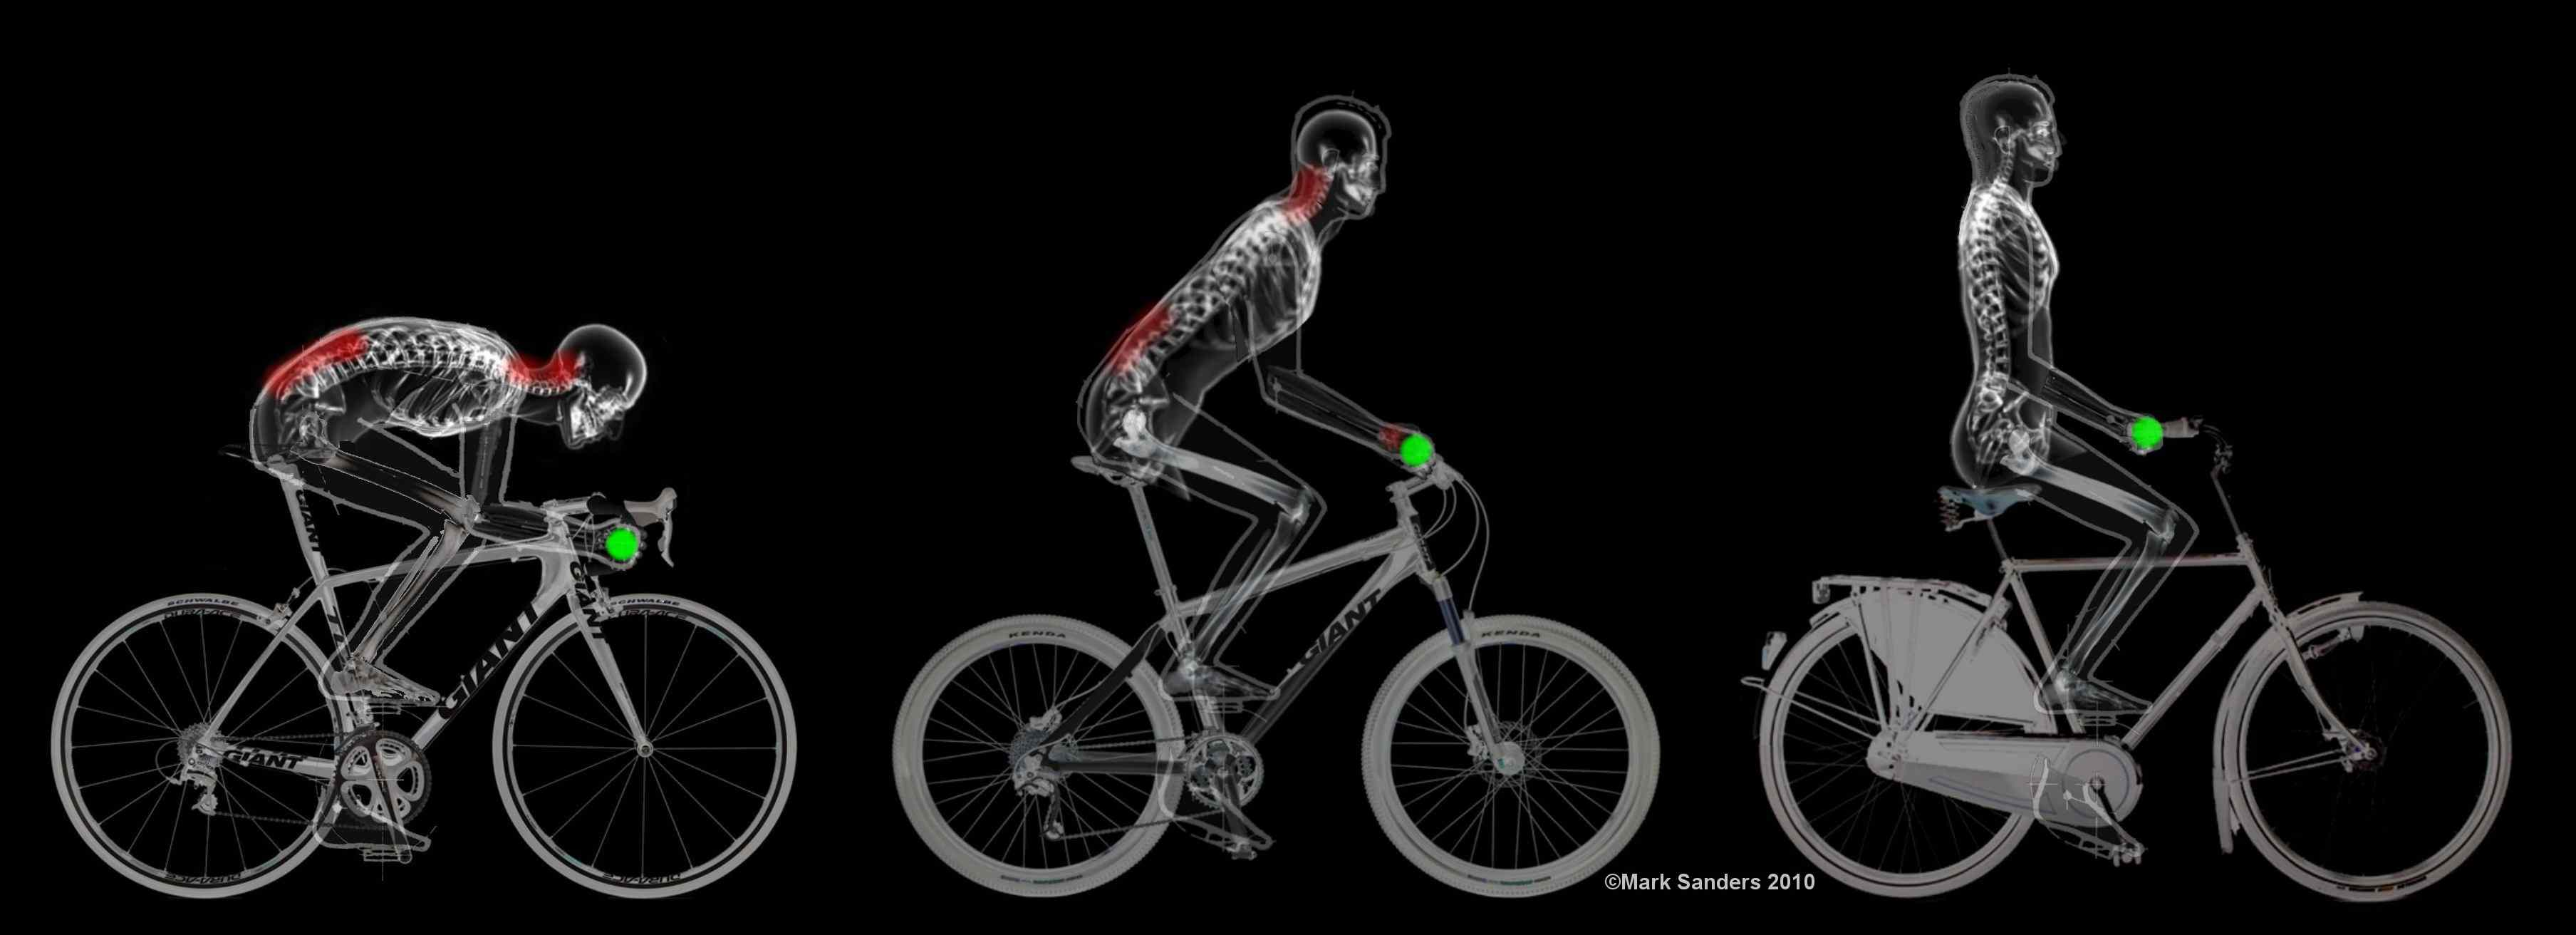 Xrays of a person in different postures on a bike